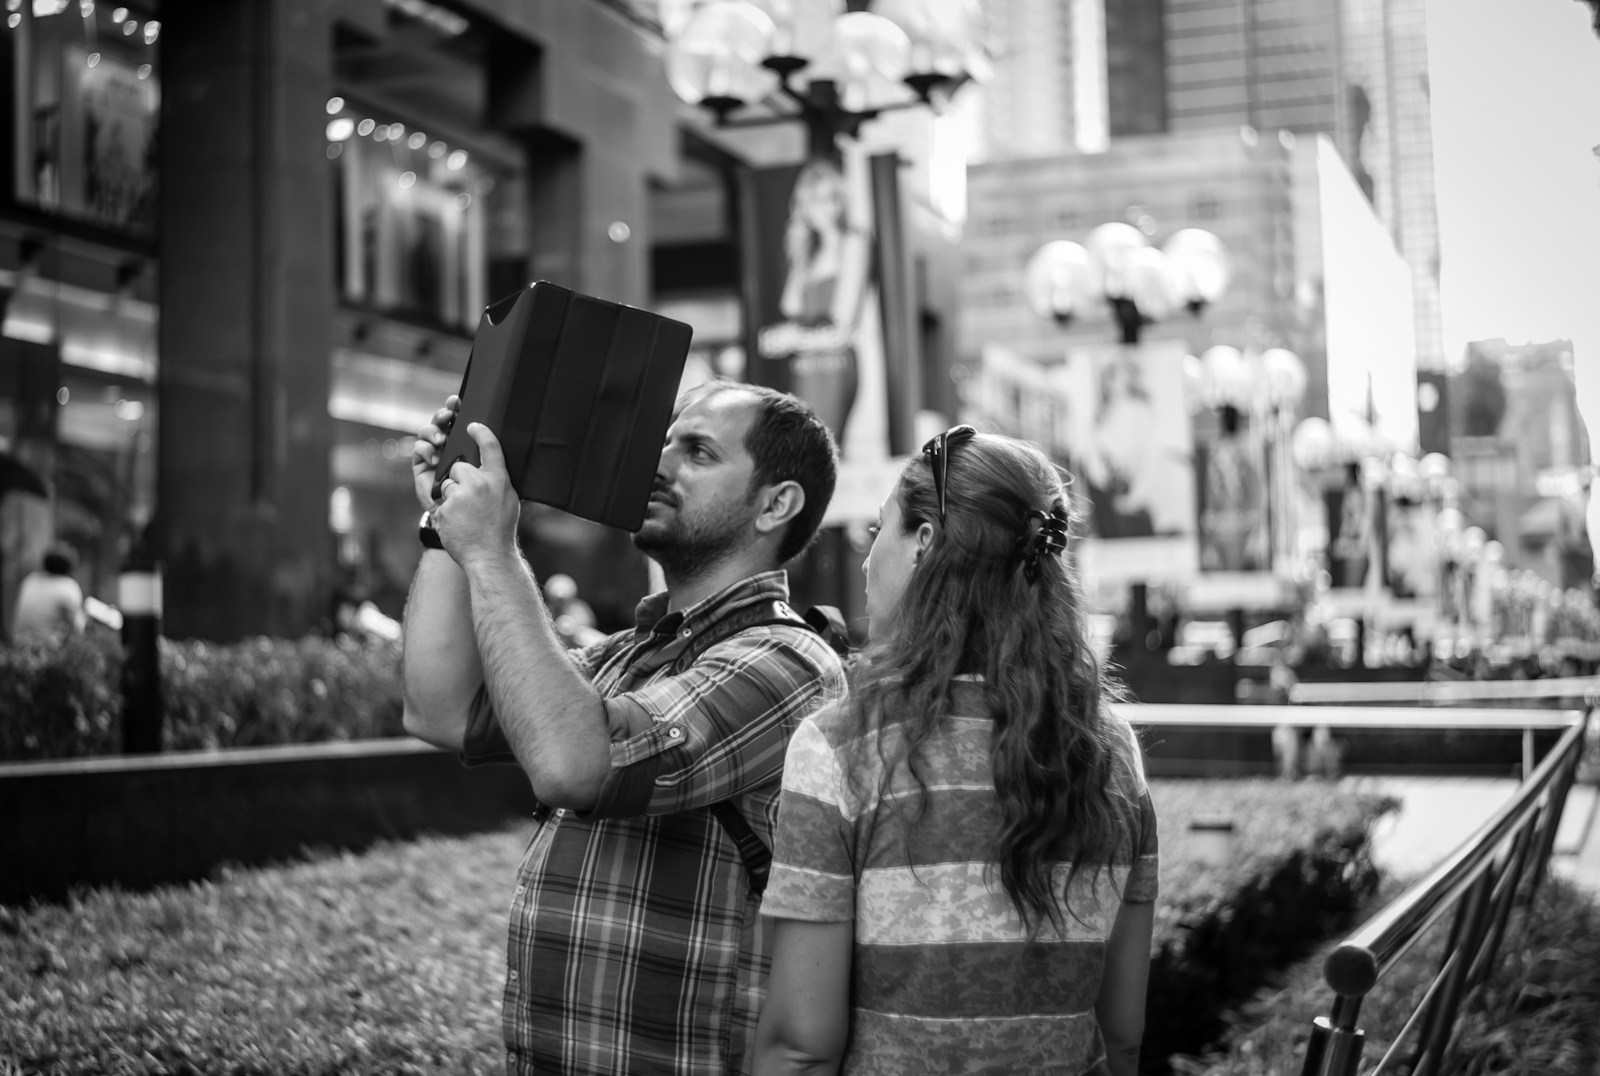 Tourist taking photos with his tablet